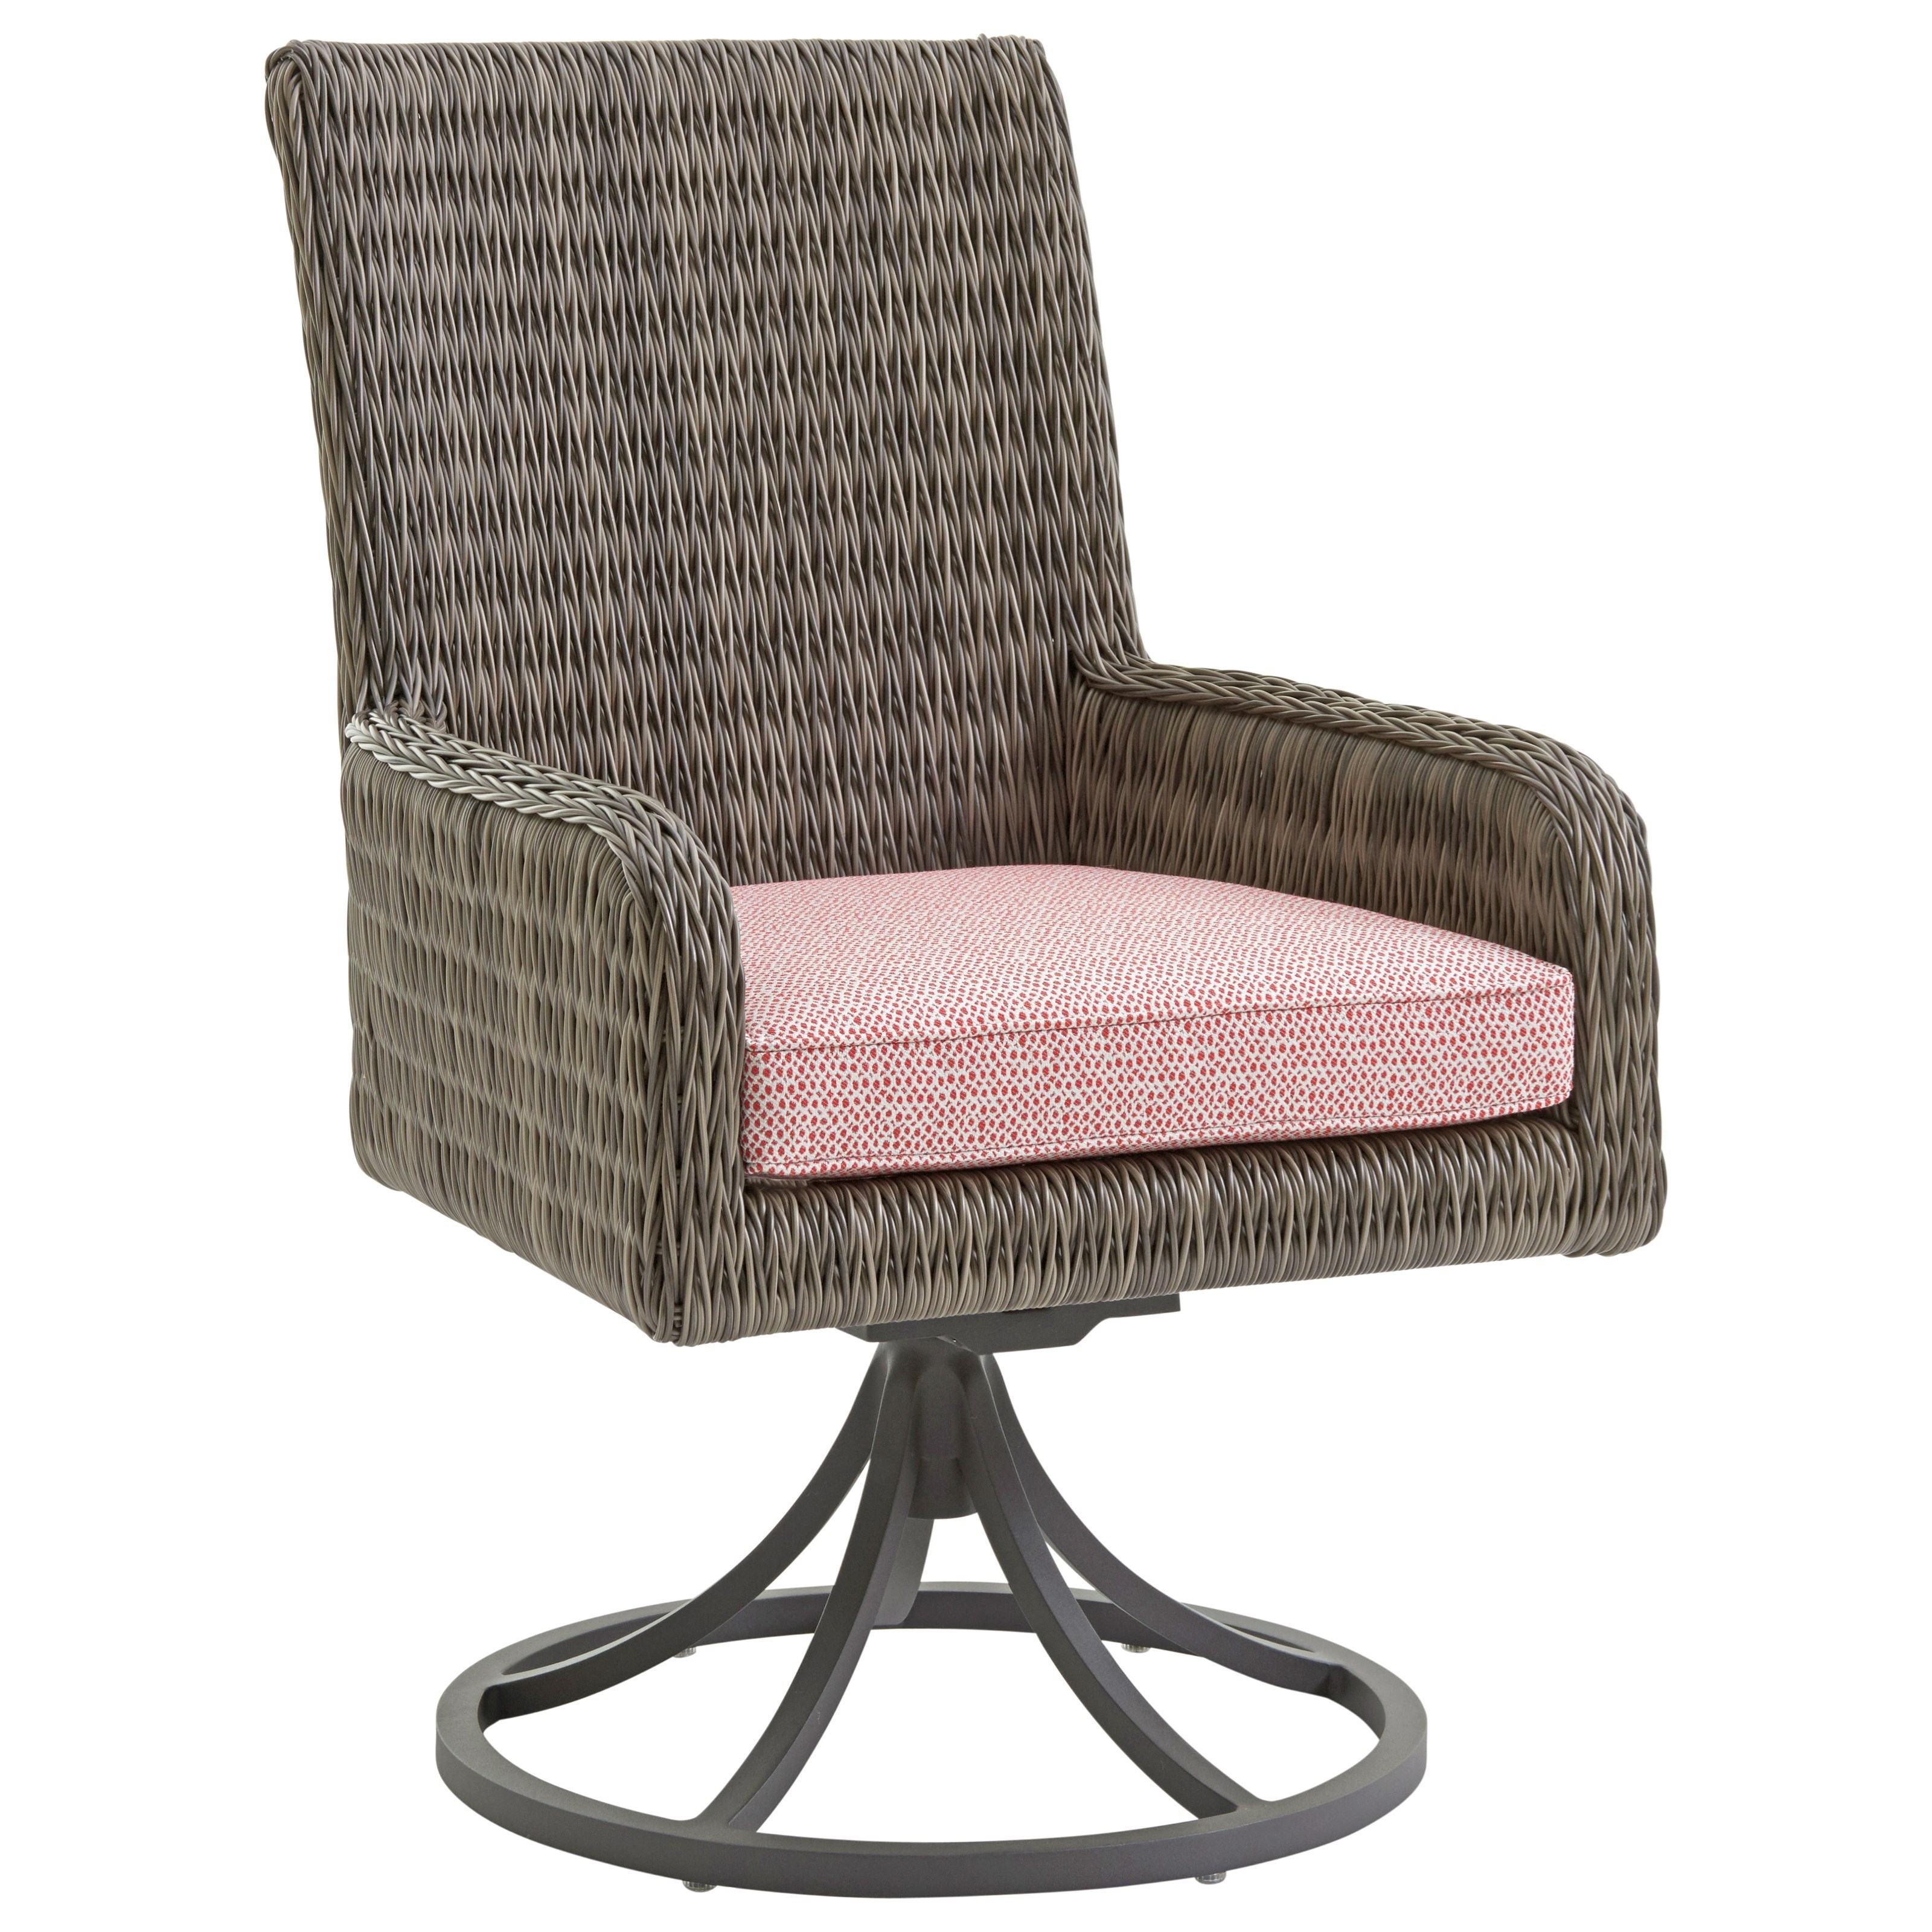 Cypress Point Ocean Terrace Outdoor Swivel Rocker Dining Chair by Tommy Bahama Outdoor Living at Baer's Furniture